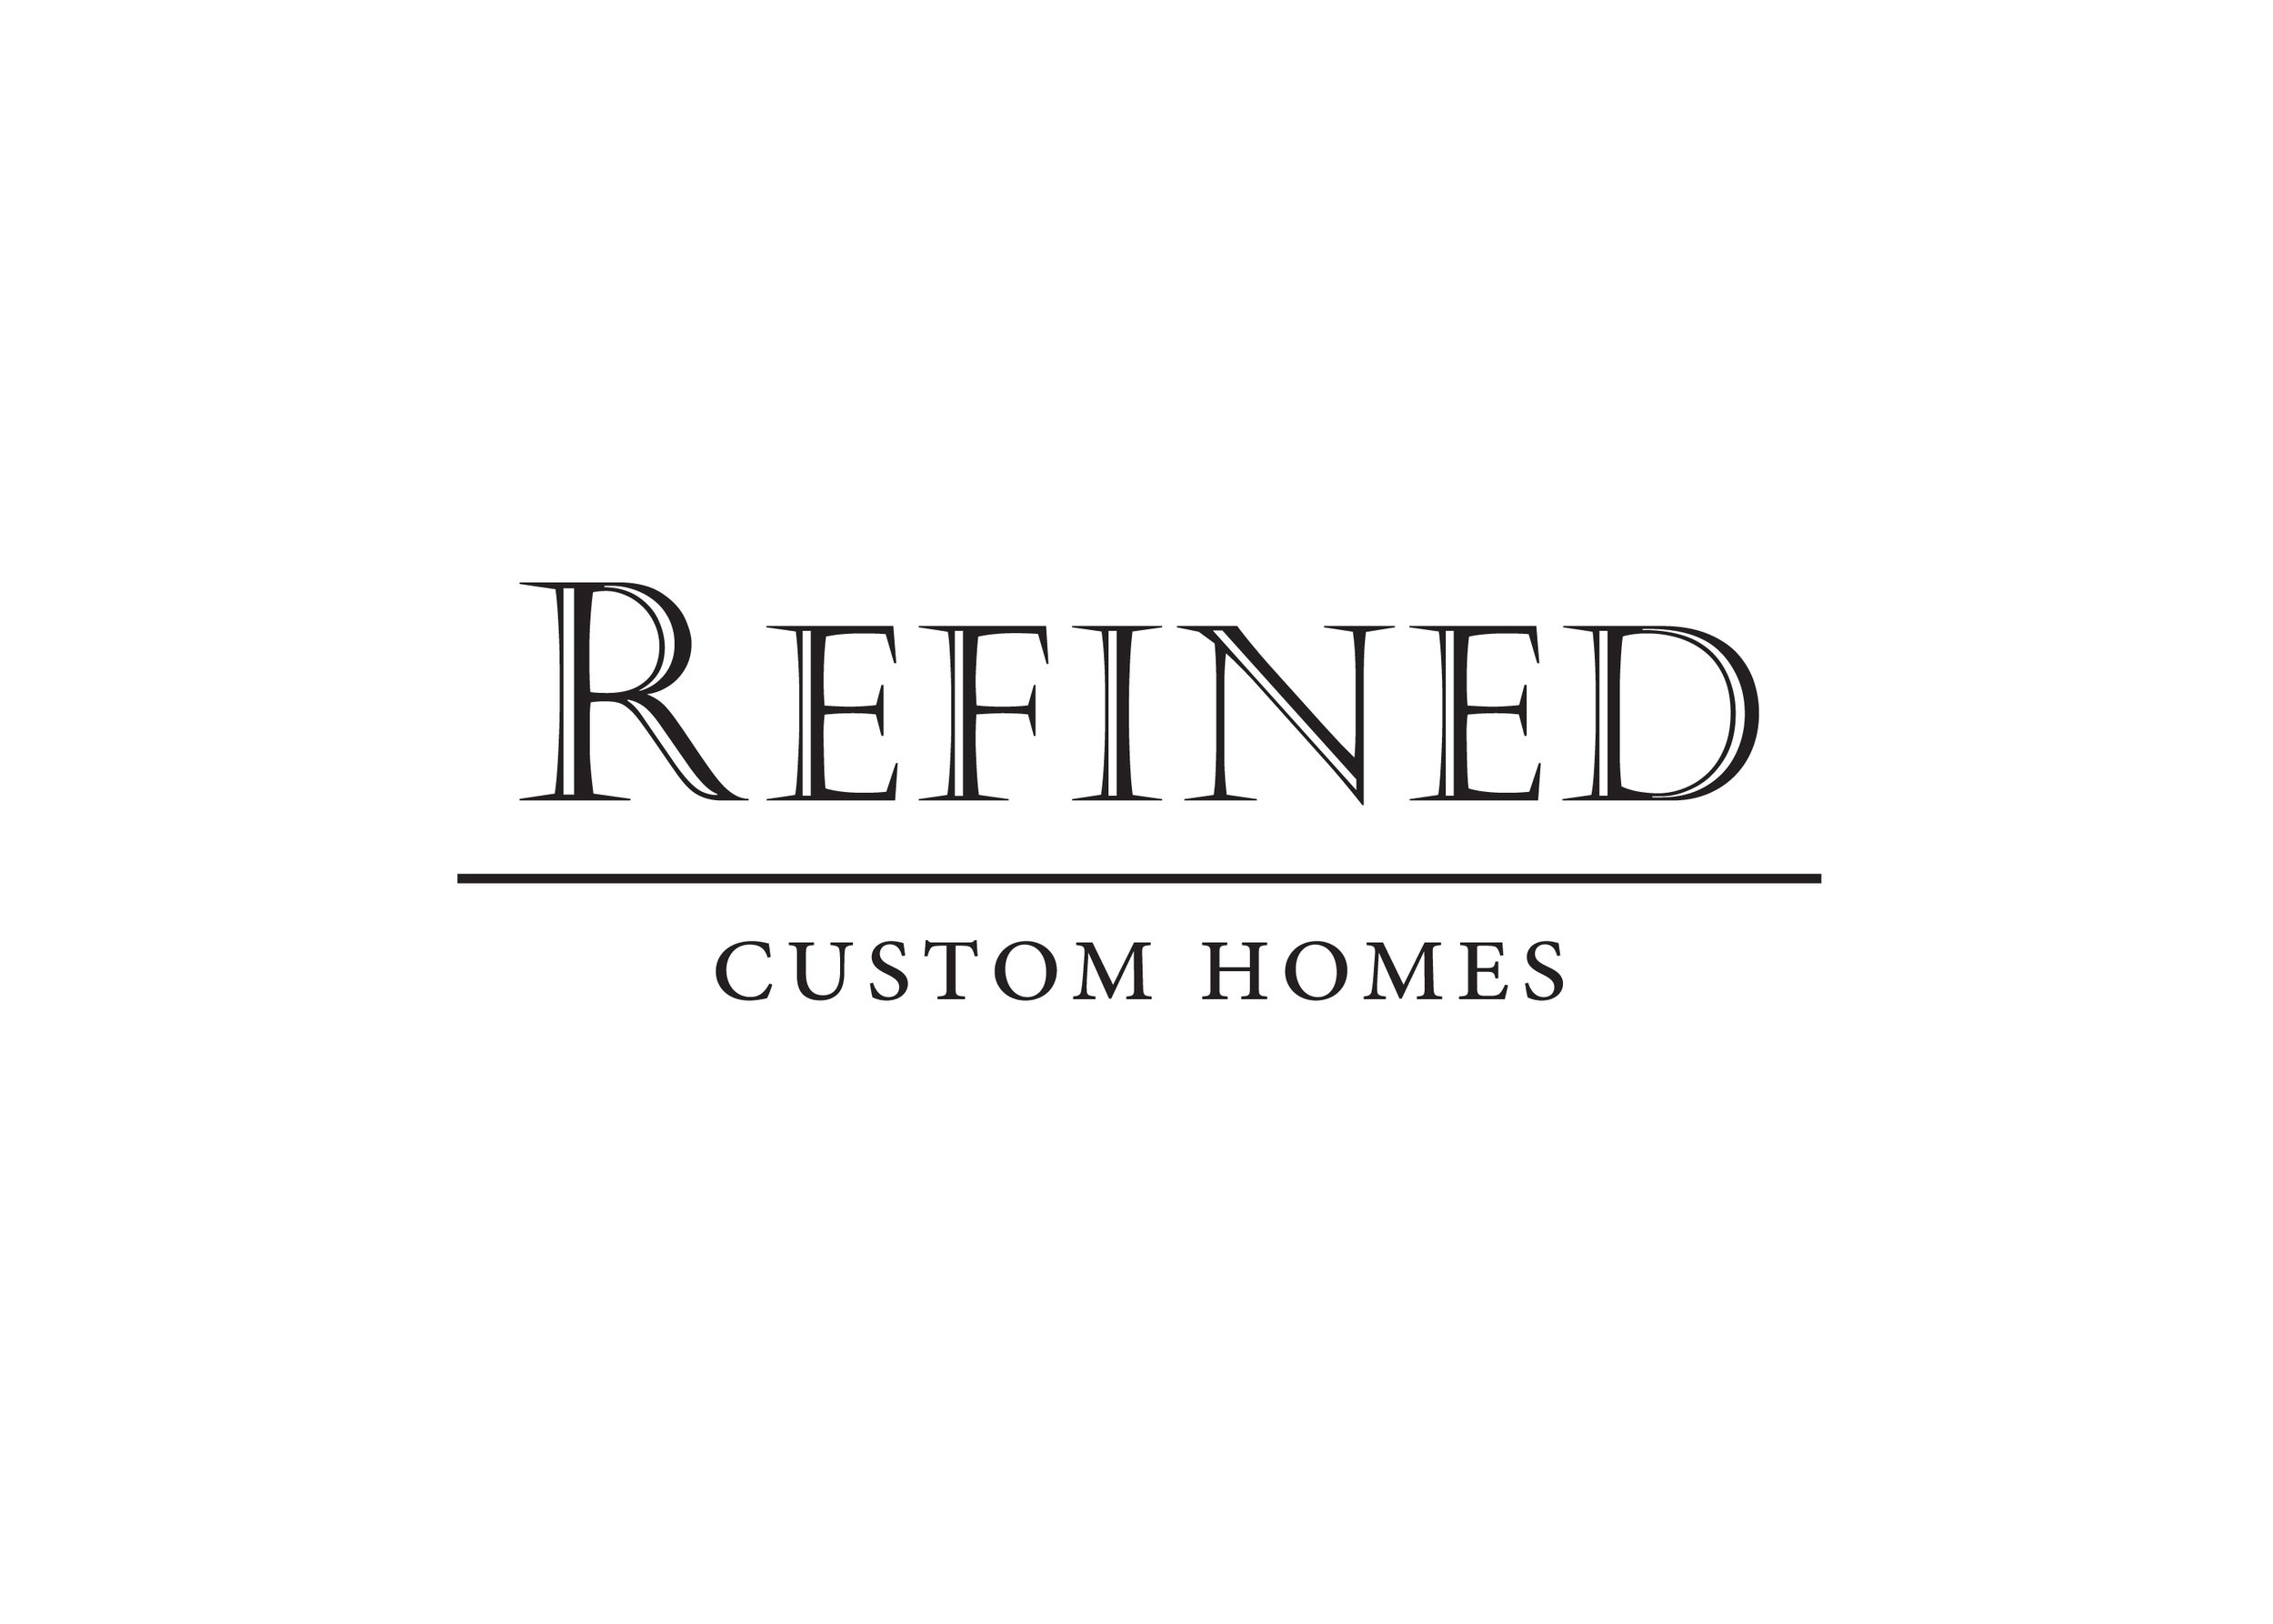 REFINED Custom Homes